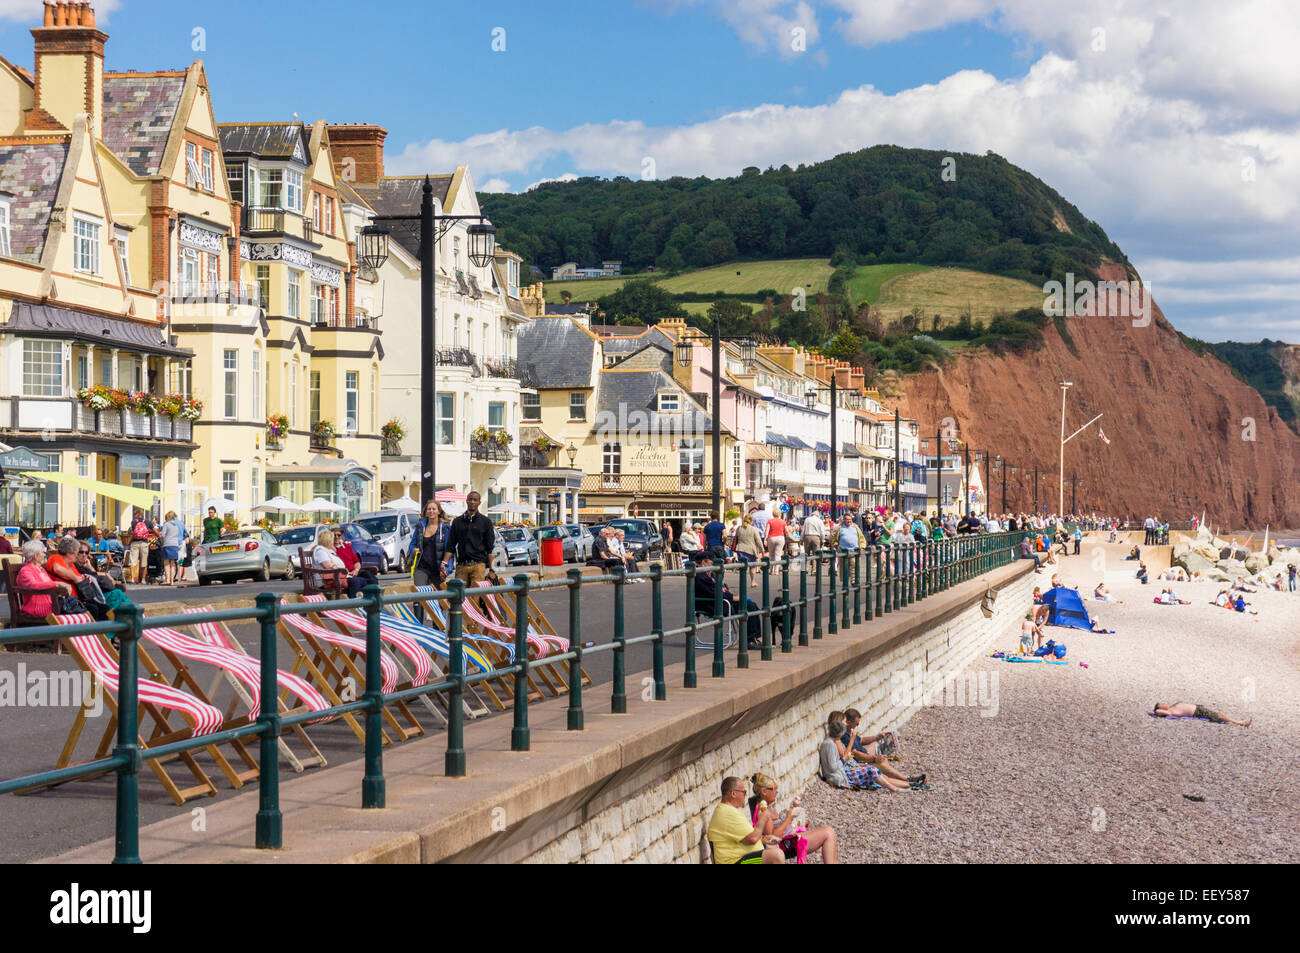 Old fashioned seaside town of Sidmouth, Devon, UK - Stock Image